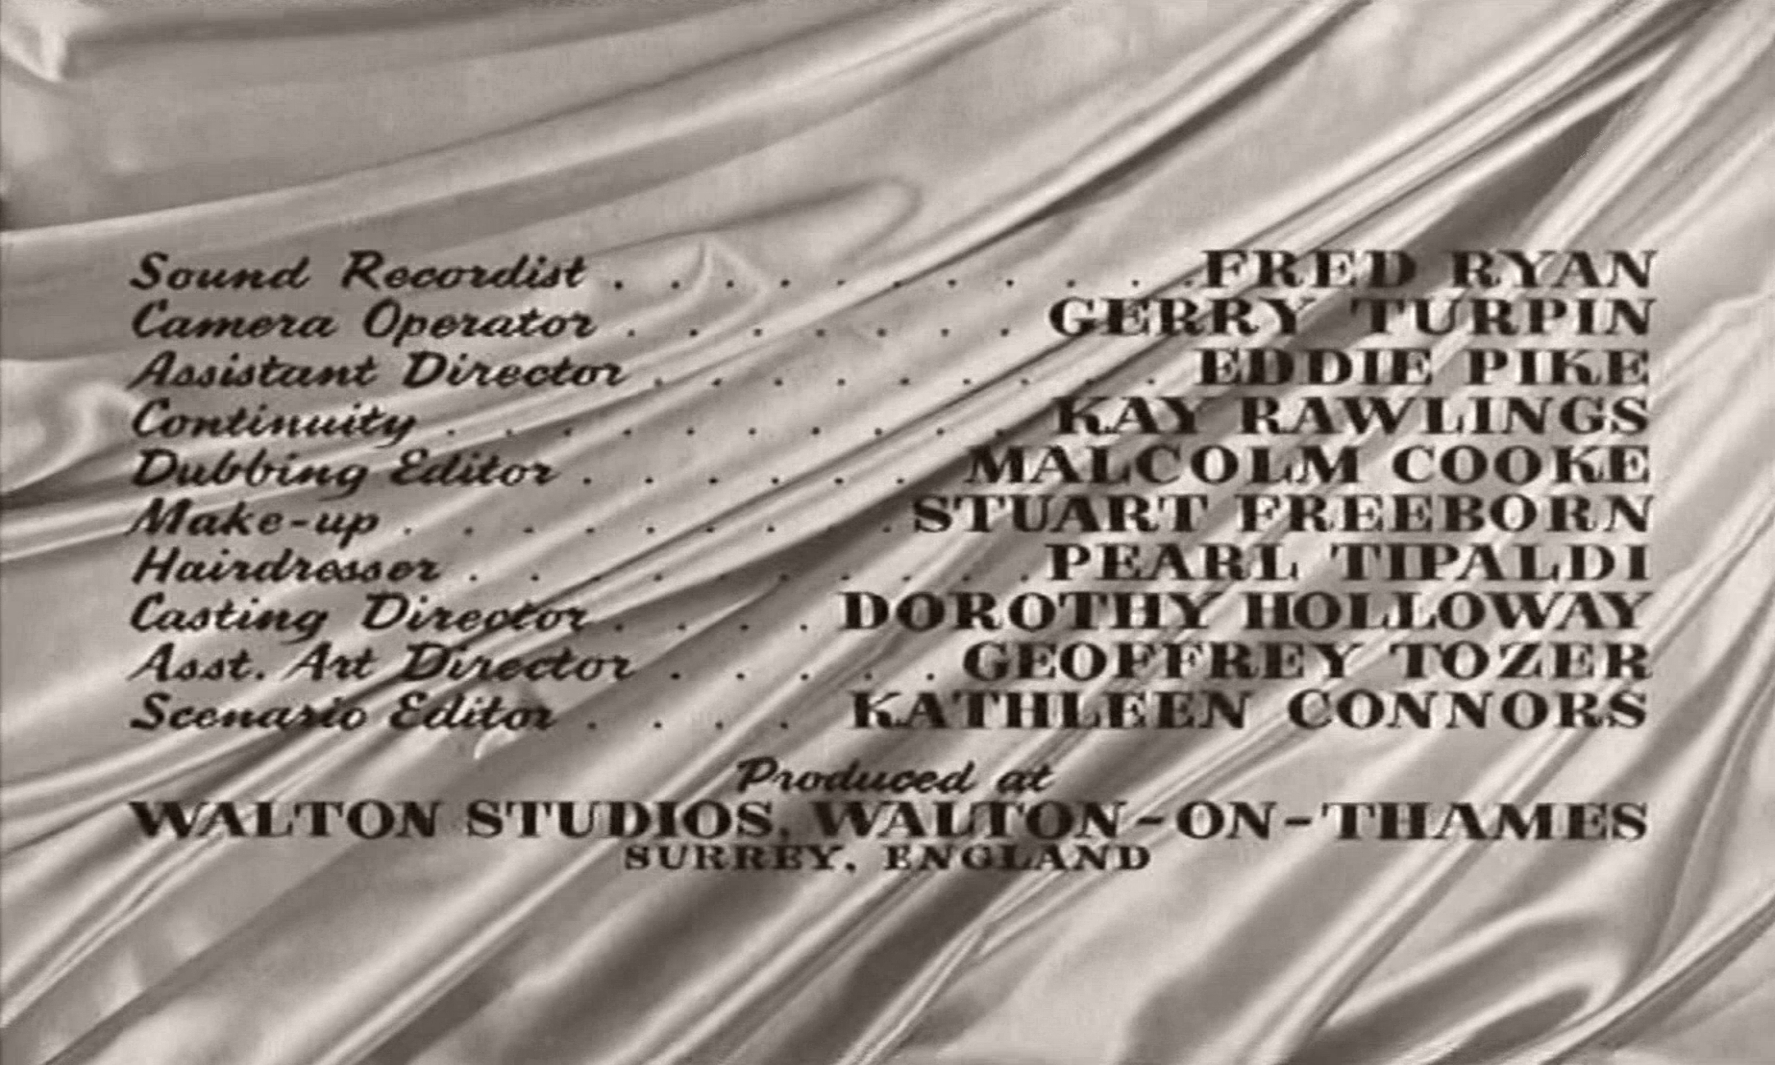 Main title from The Naked Truth (1957) (7).  Produced at Walton Studios Walton-on-Thames, Surrey, England